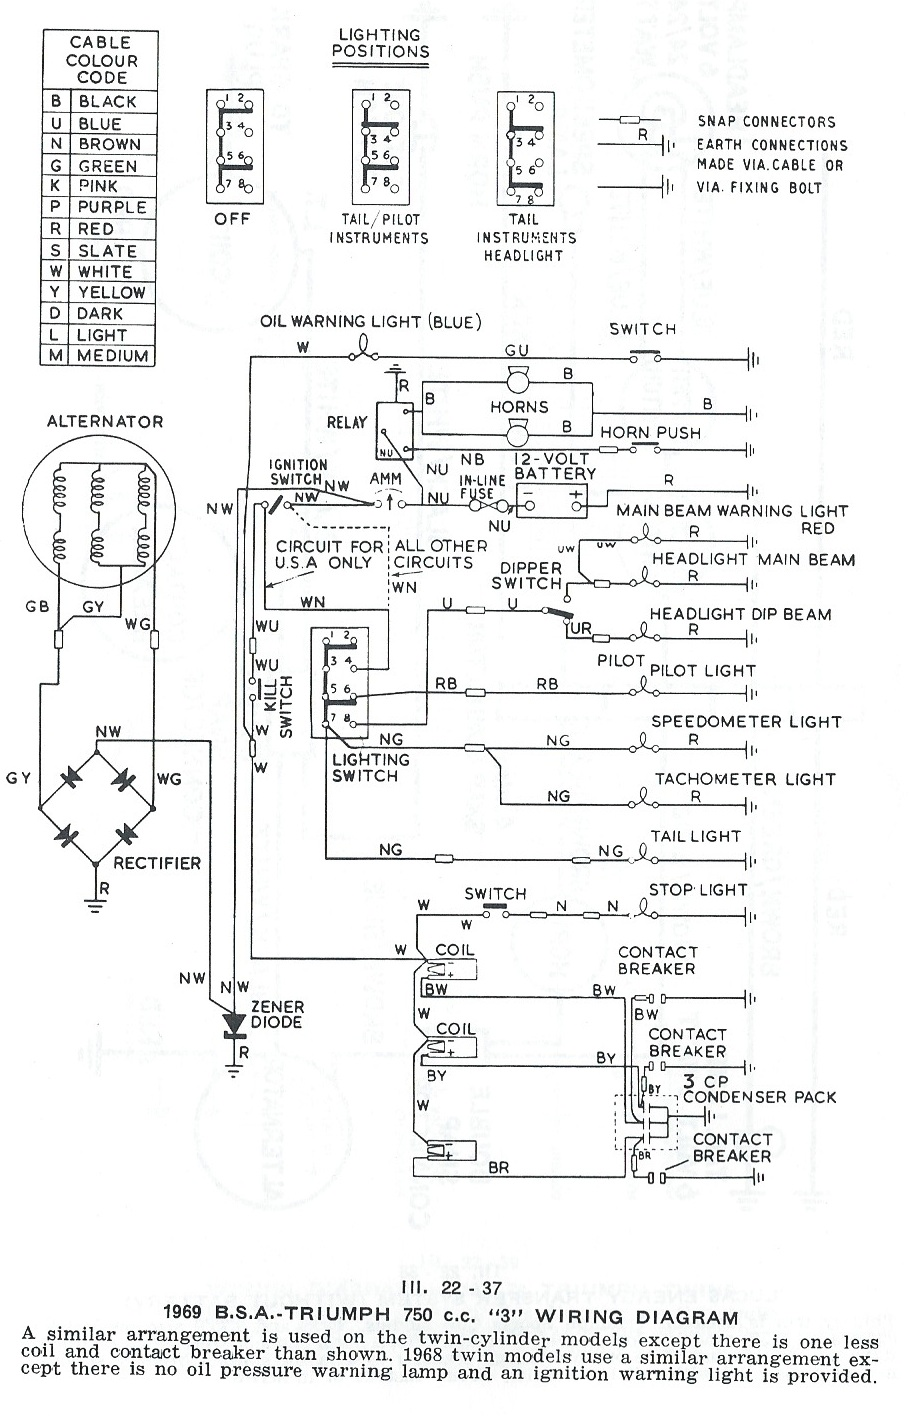 Charming Micro Mk111 Ignition Triumph Wiring Diagram